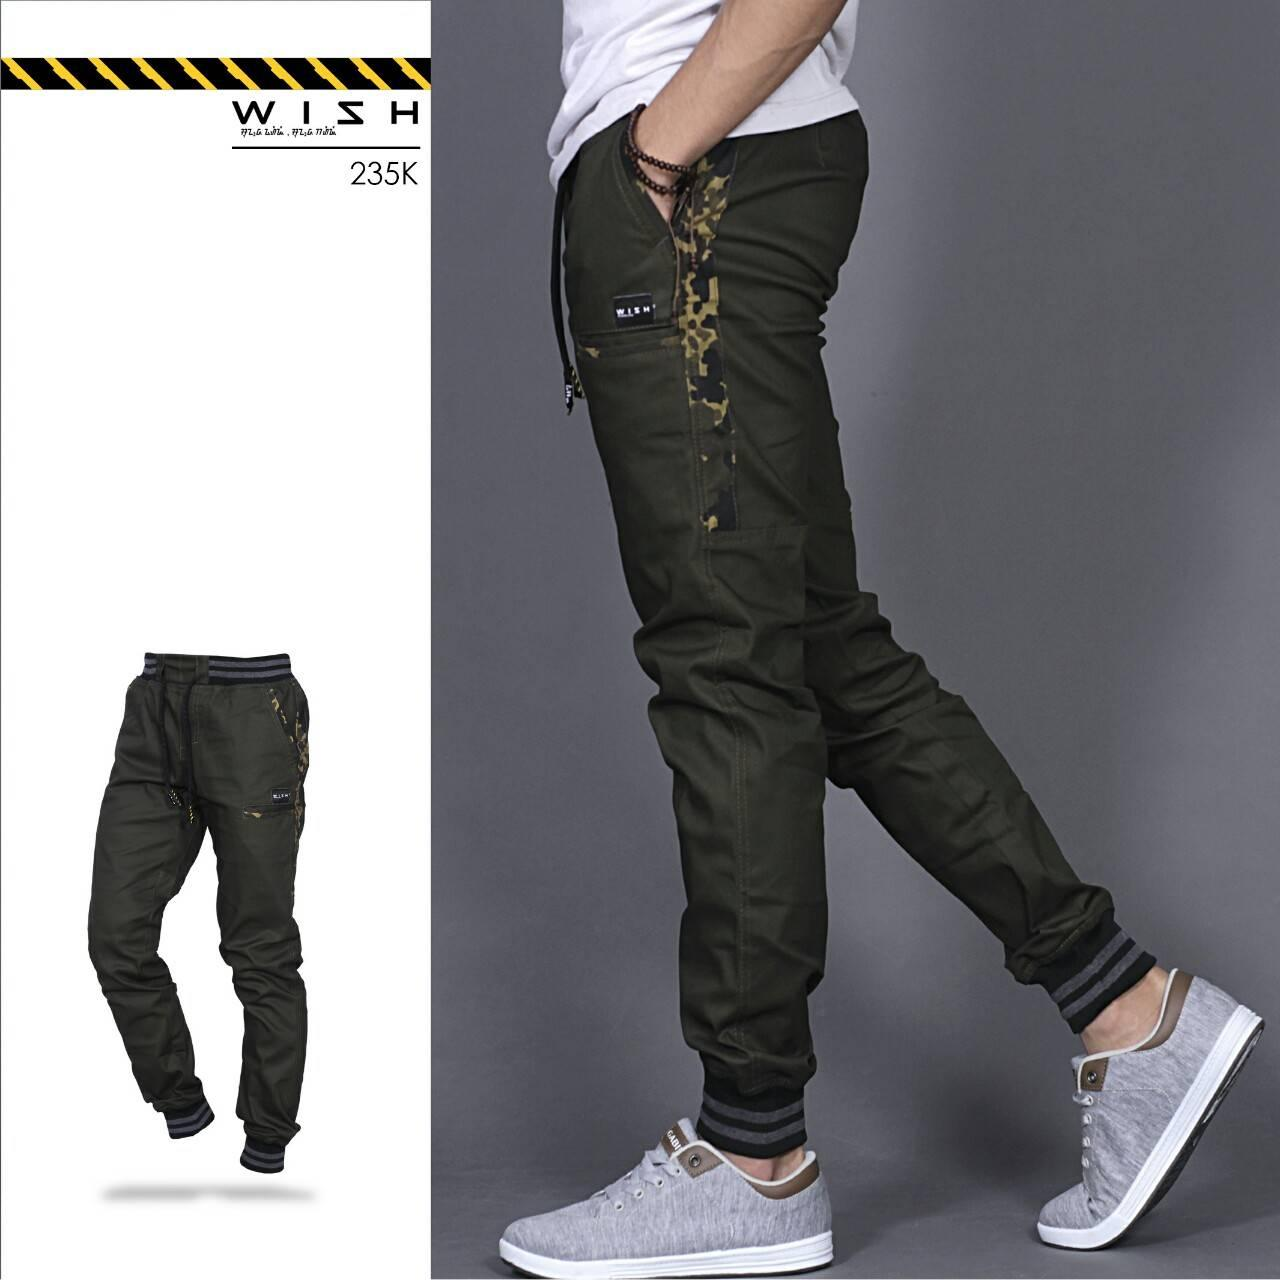 Celana Joger Pants Pria-Wish Jogger Side Camouflage Original By Raffastore_id.